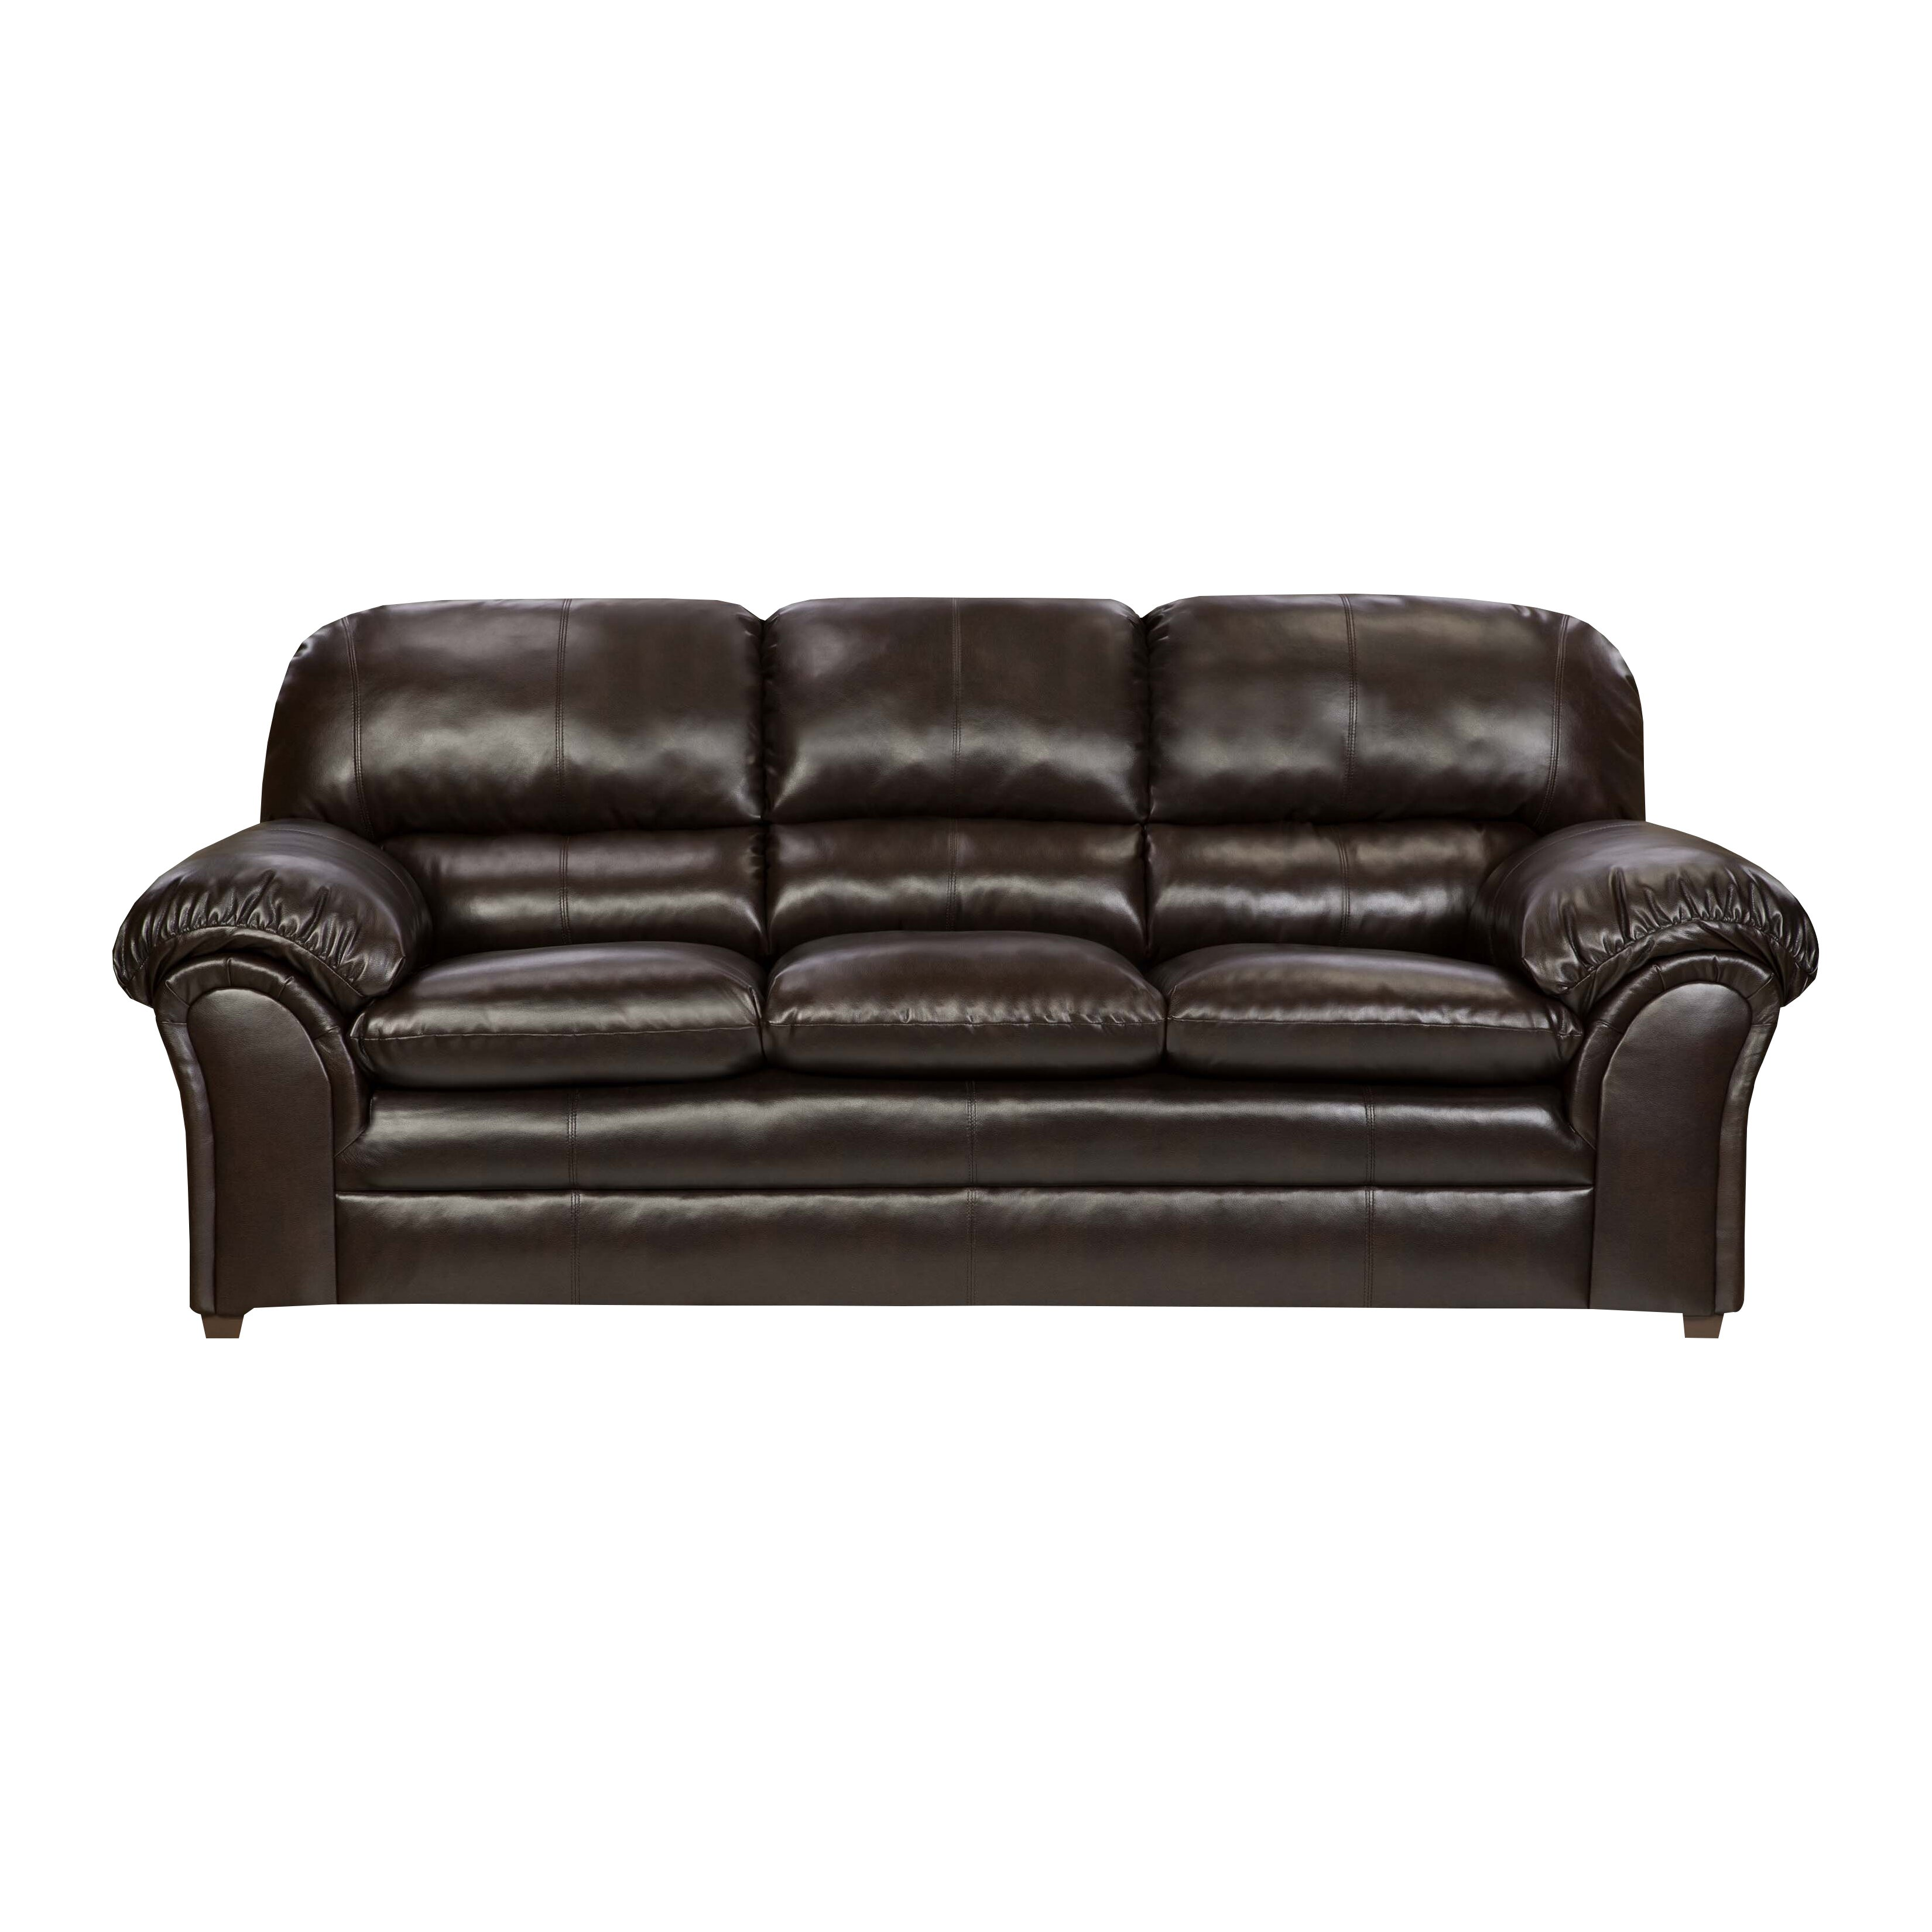 simmons sofa reviews - 28 images - simmons upholstery ...